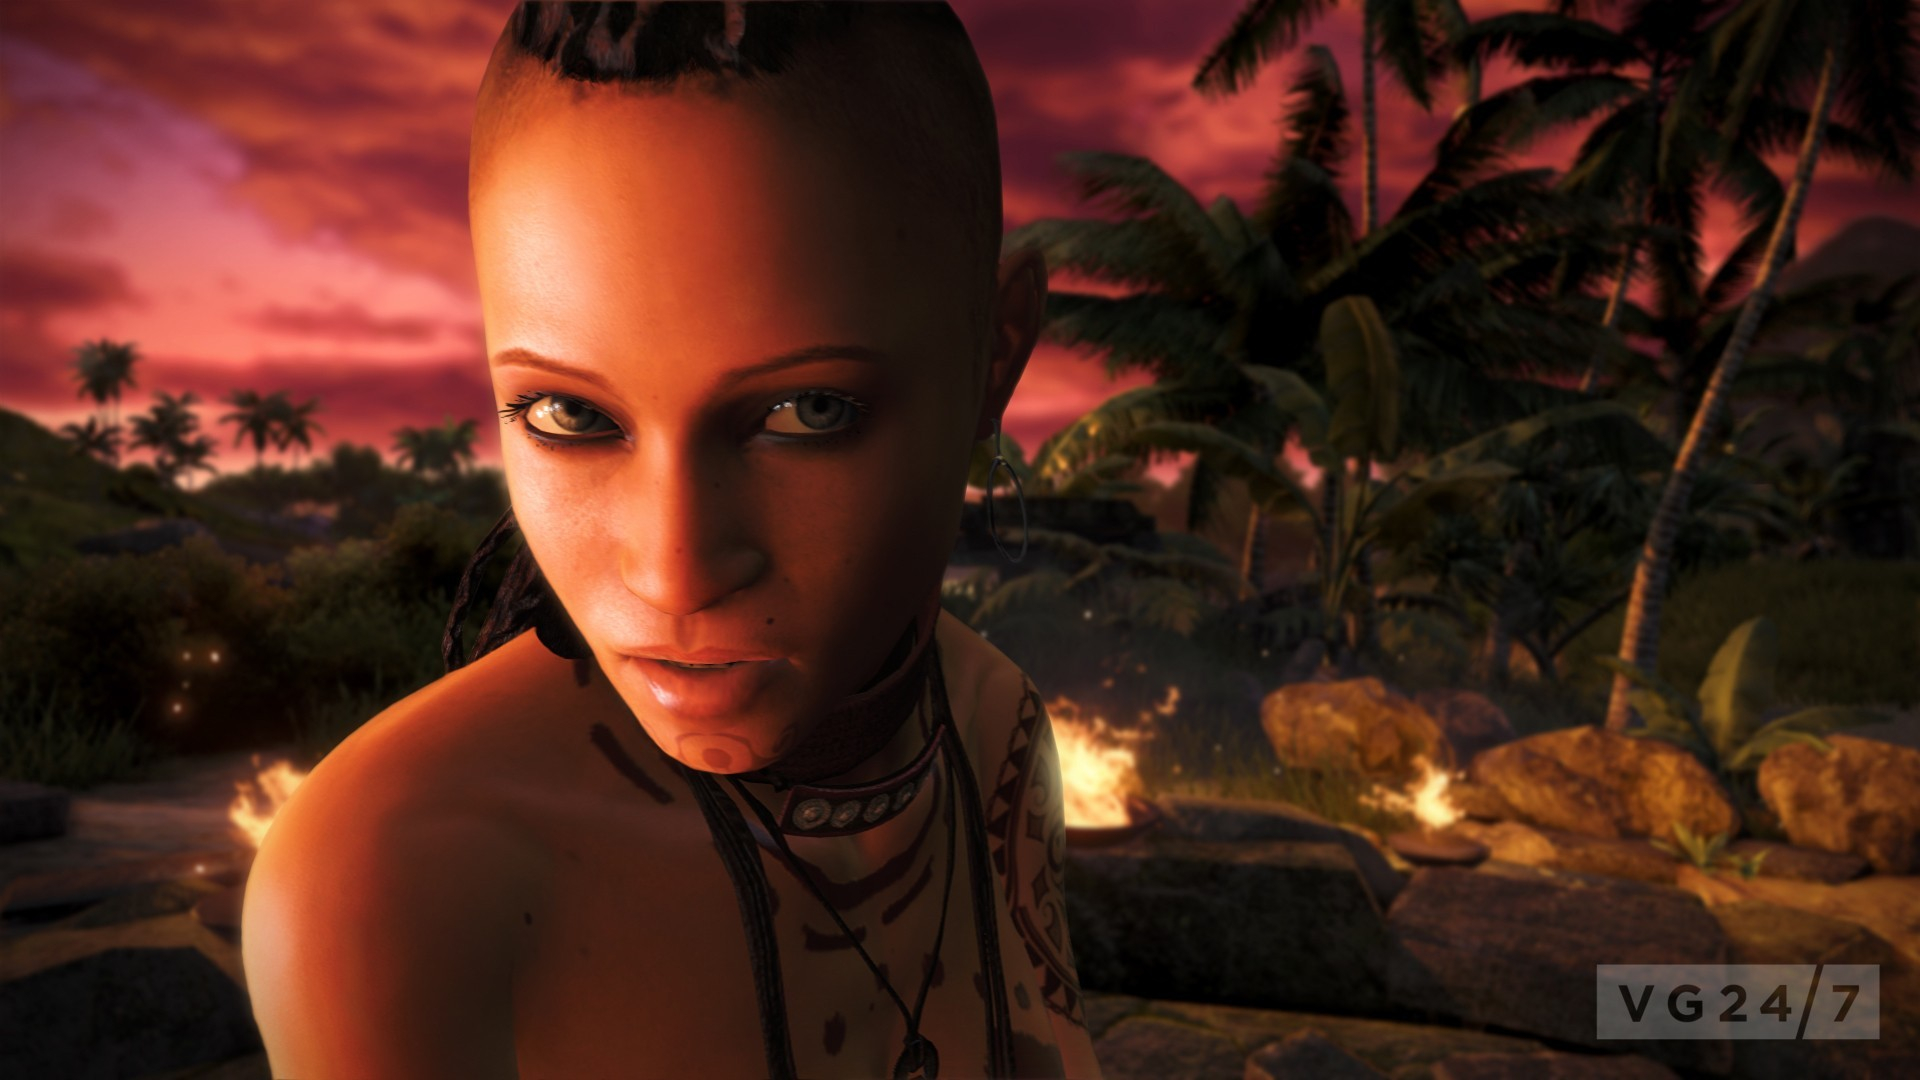 Far Cry 3 Shows Lady Bits, Has Lots Of Swearing - Vg247-9586